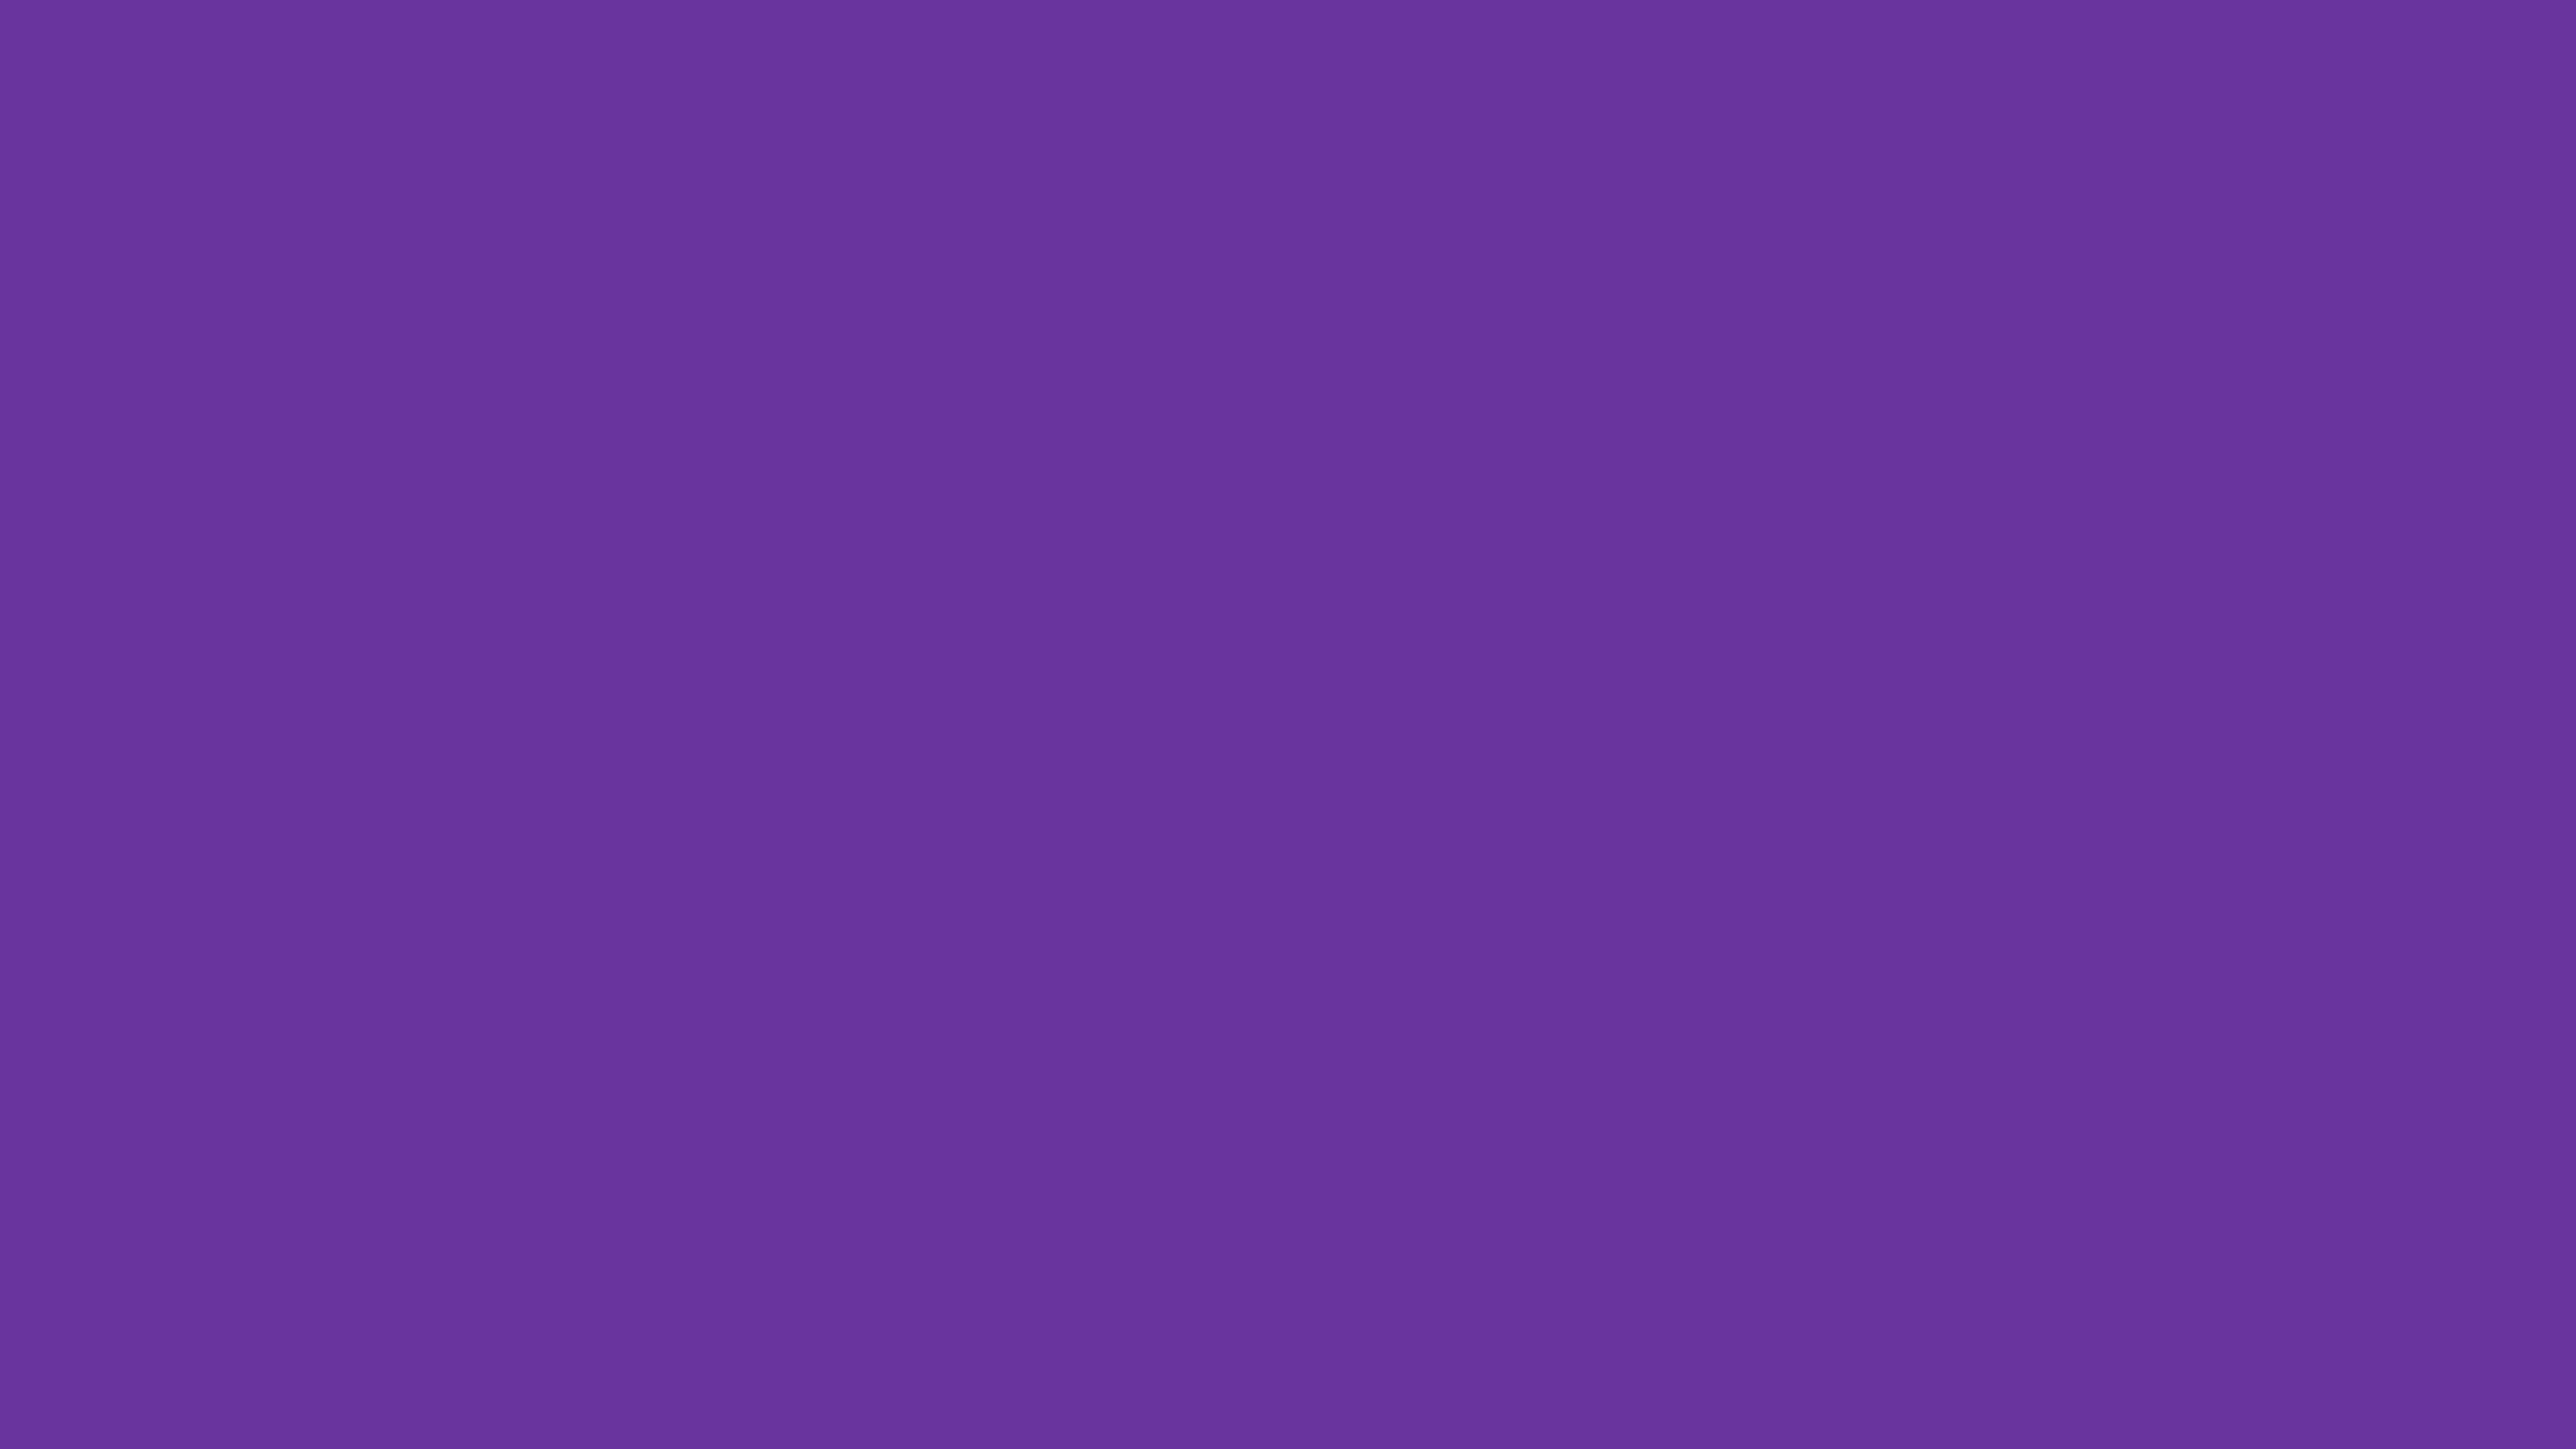 4096x2304 Purple Heart Solid Color Background